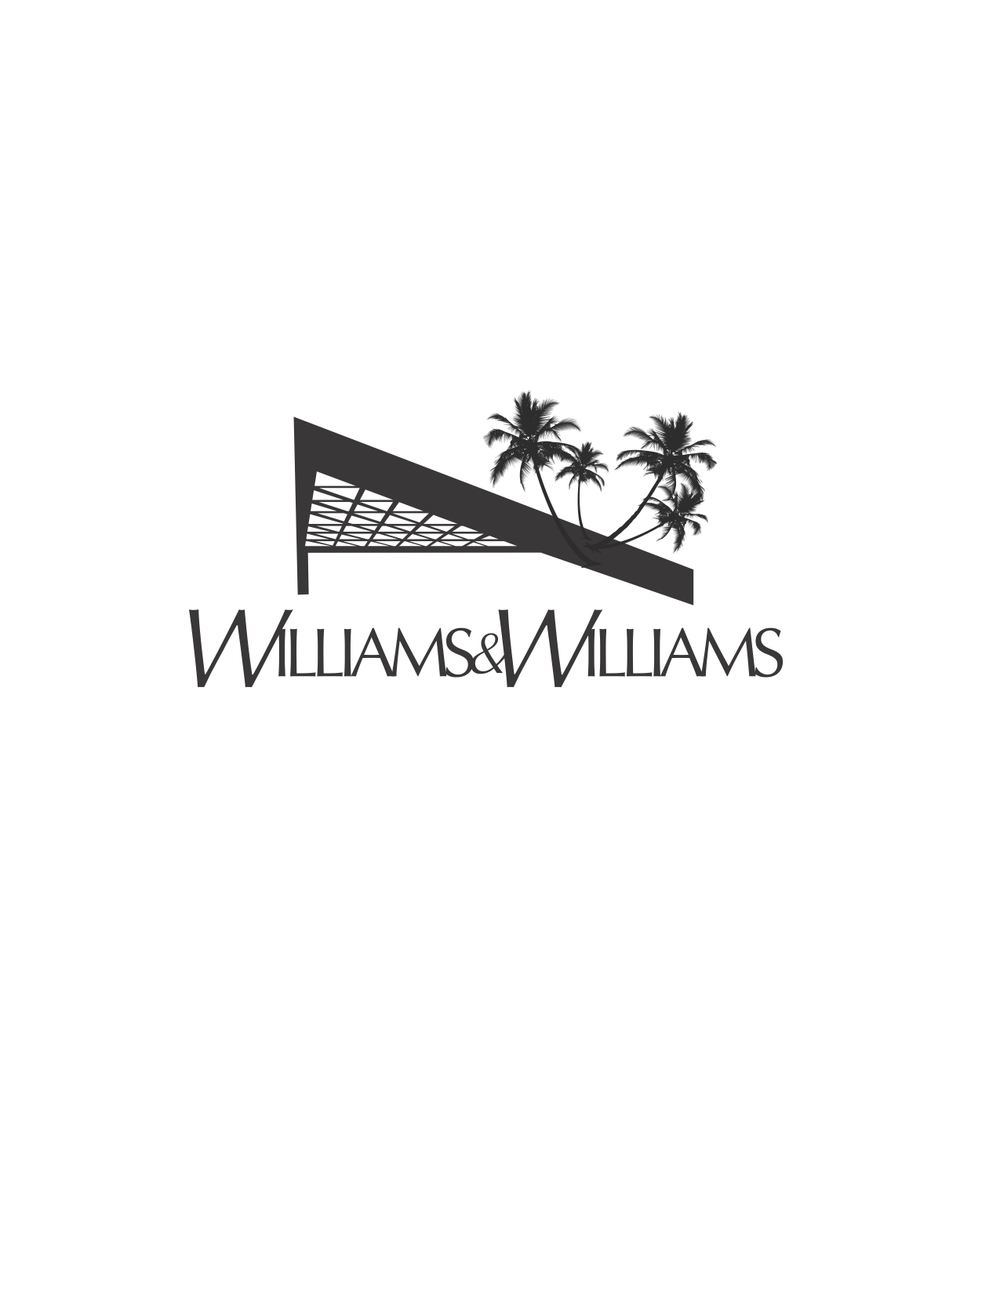 Williams%26Williams_LogoMoc_081314.jpg